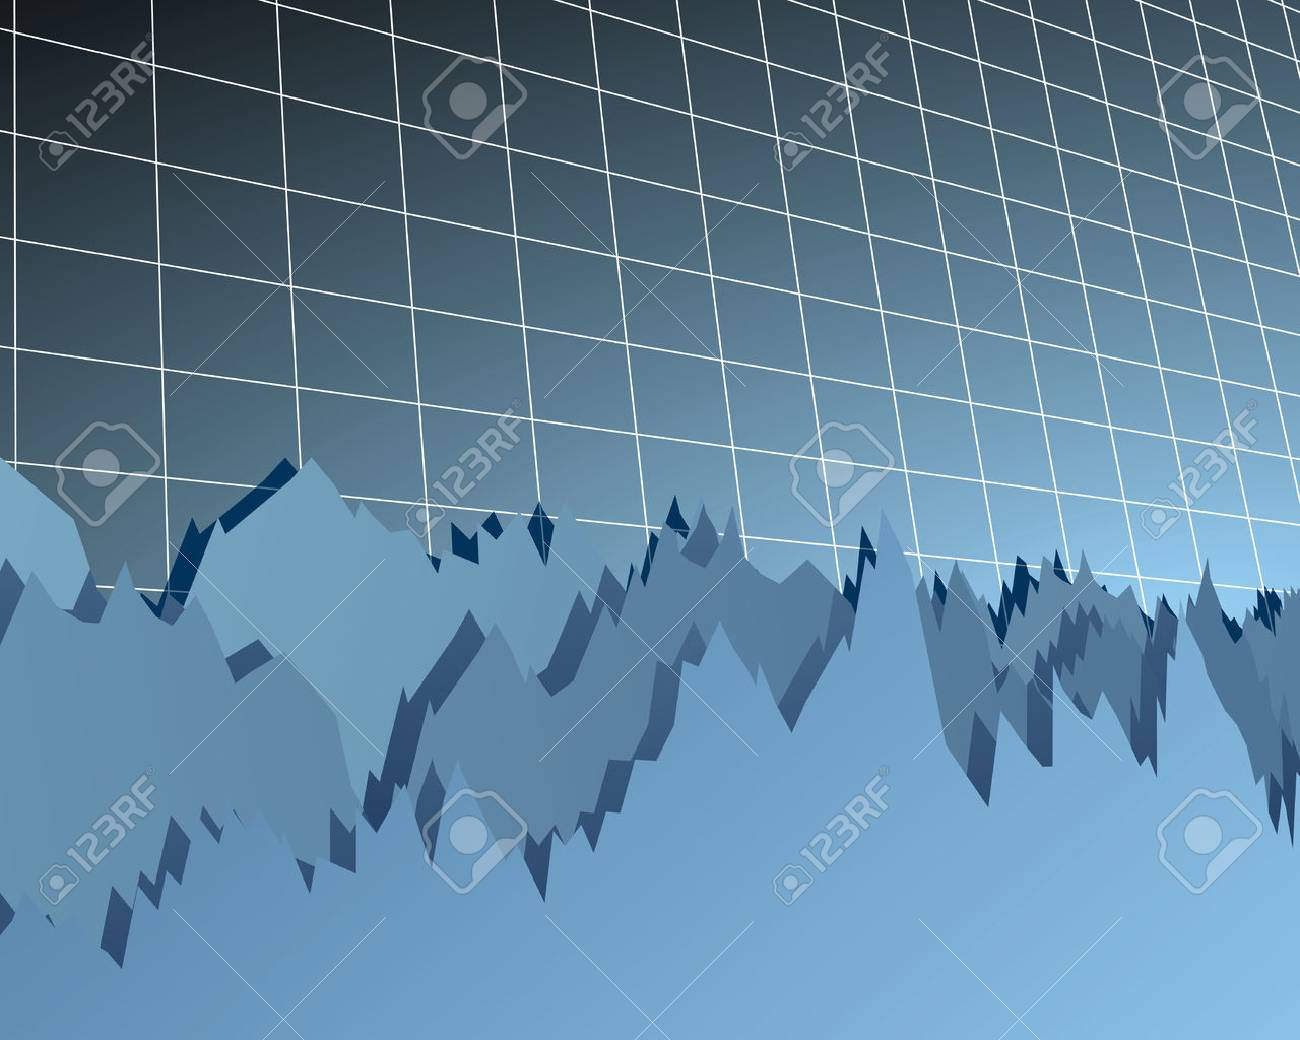 stock prices Stock Vector - 5205728